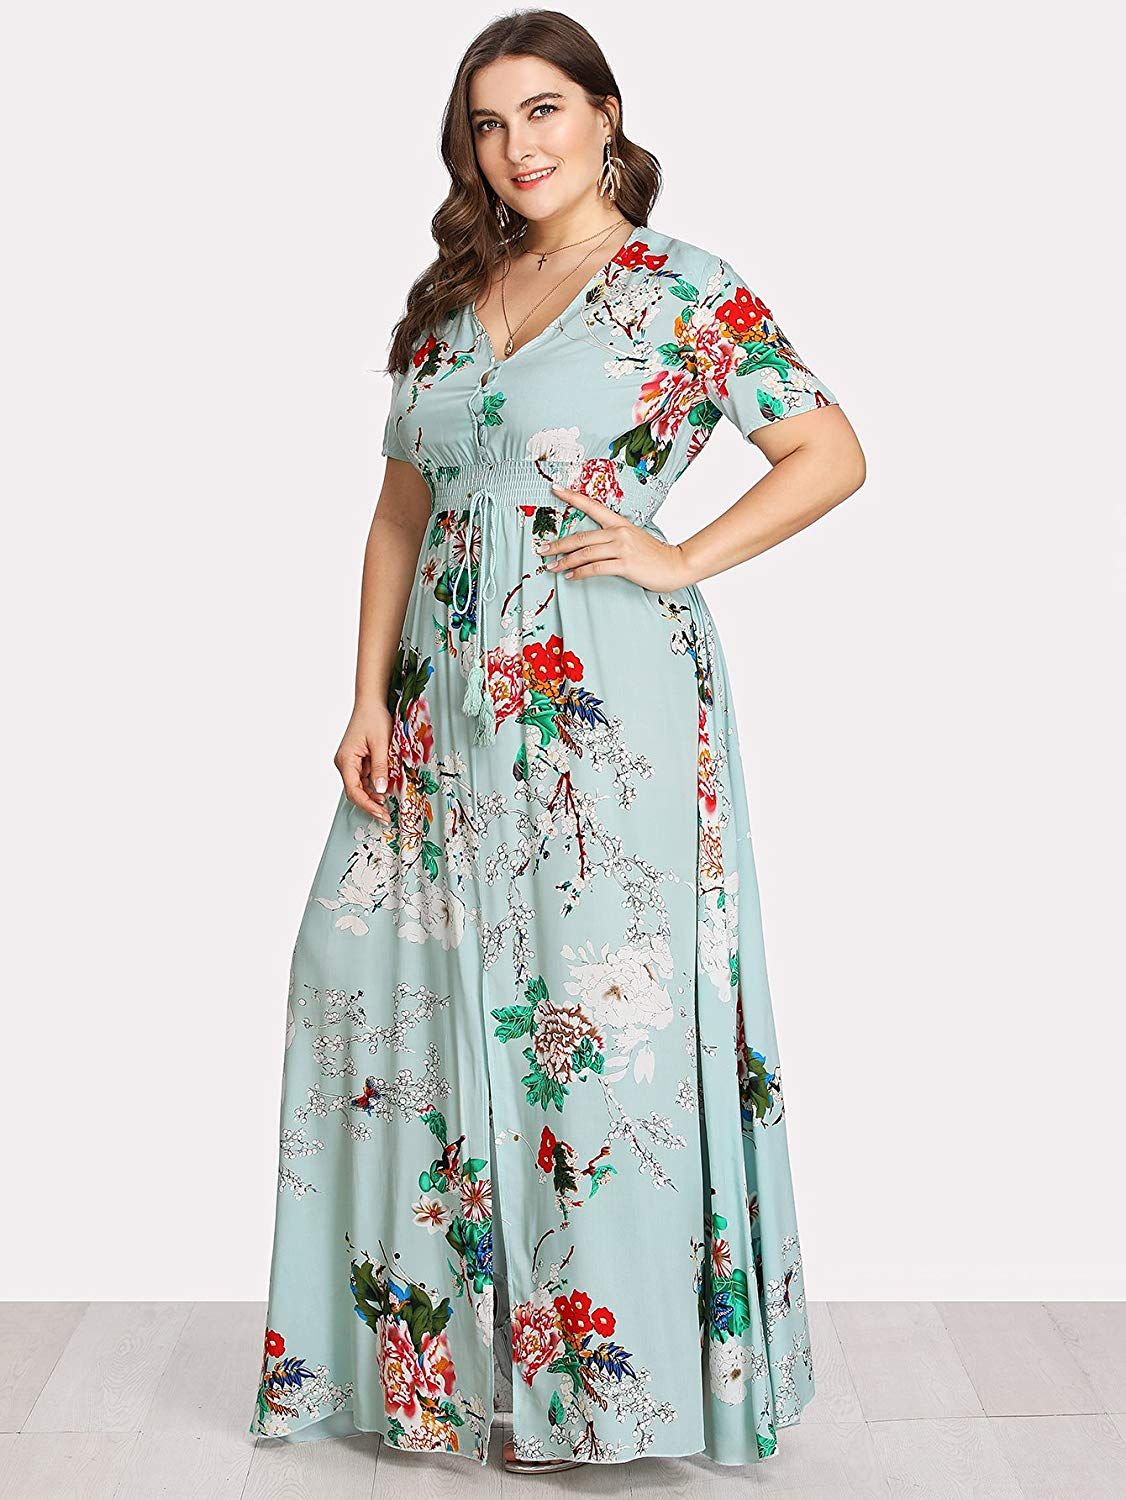 185cdf114ca Romwe Women s Plus Size Floral Print Buttons Short Sleeve V Neck Flare Flowy  Maxi Dress